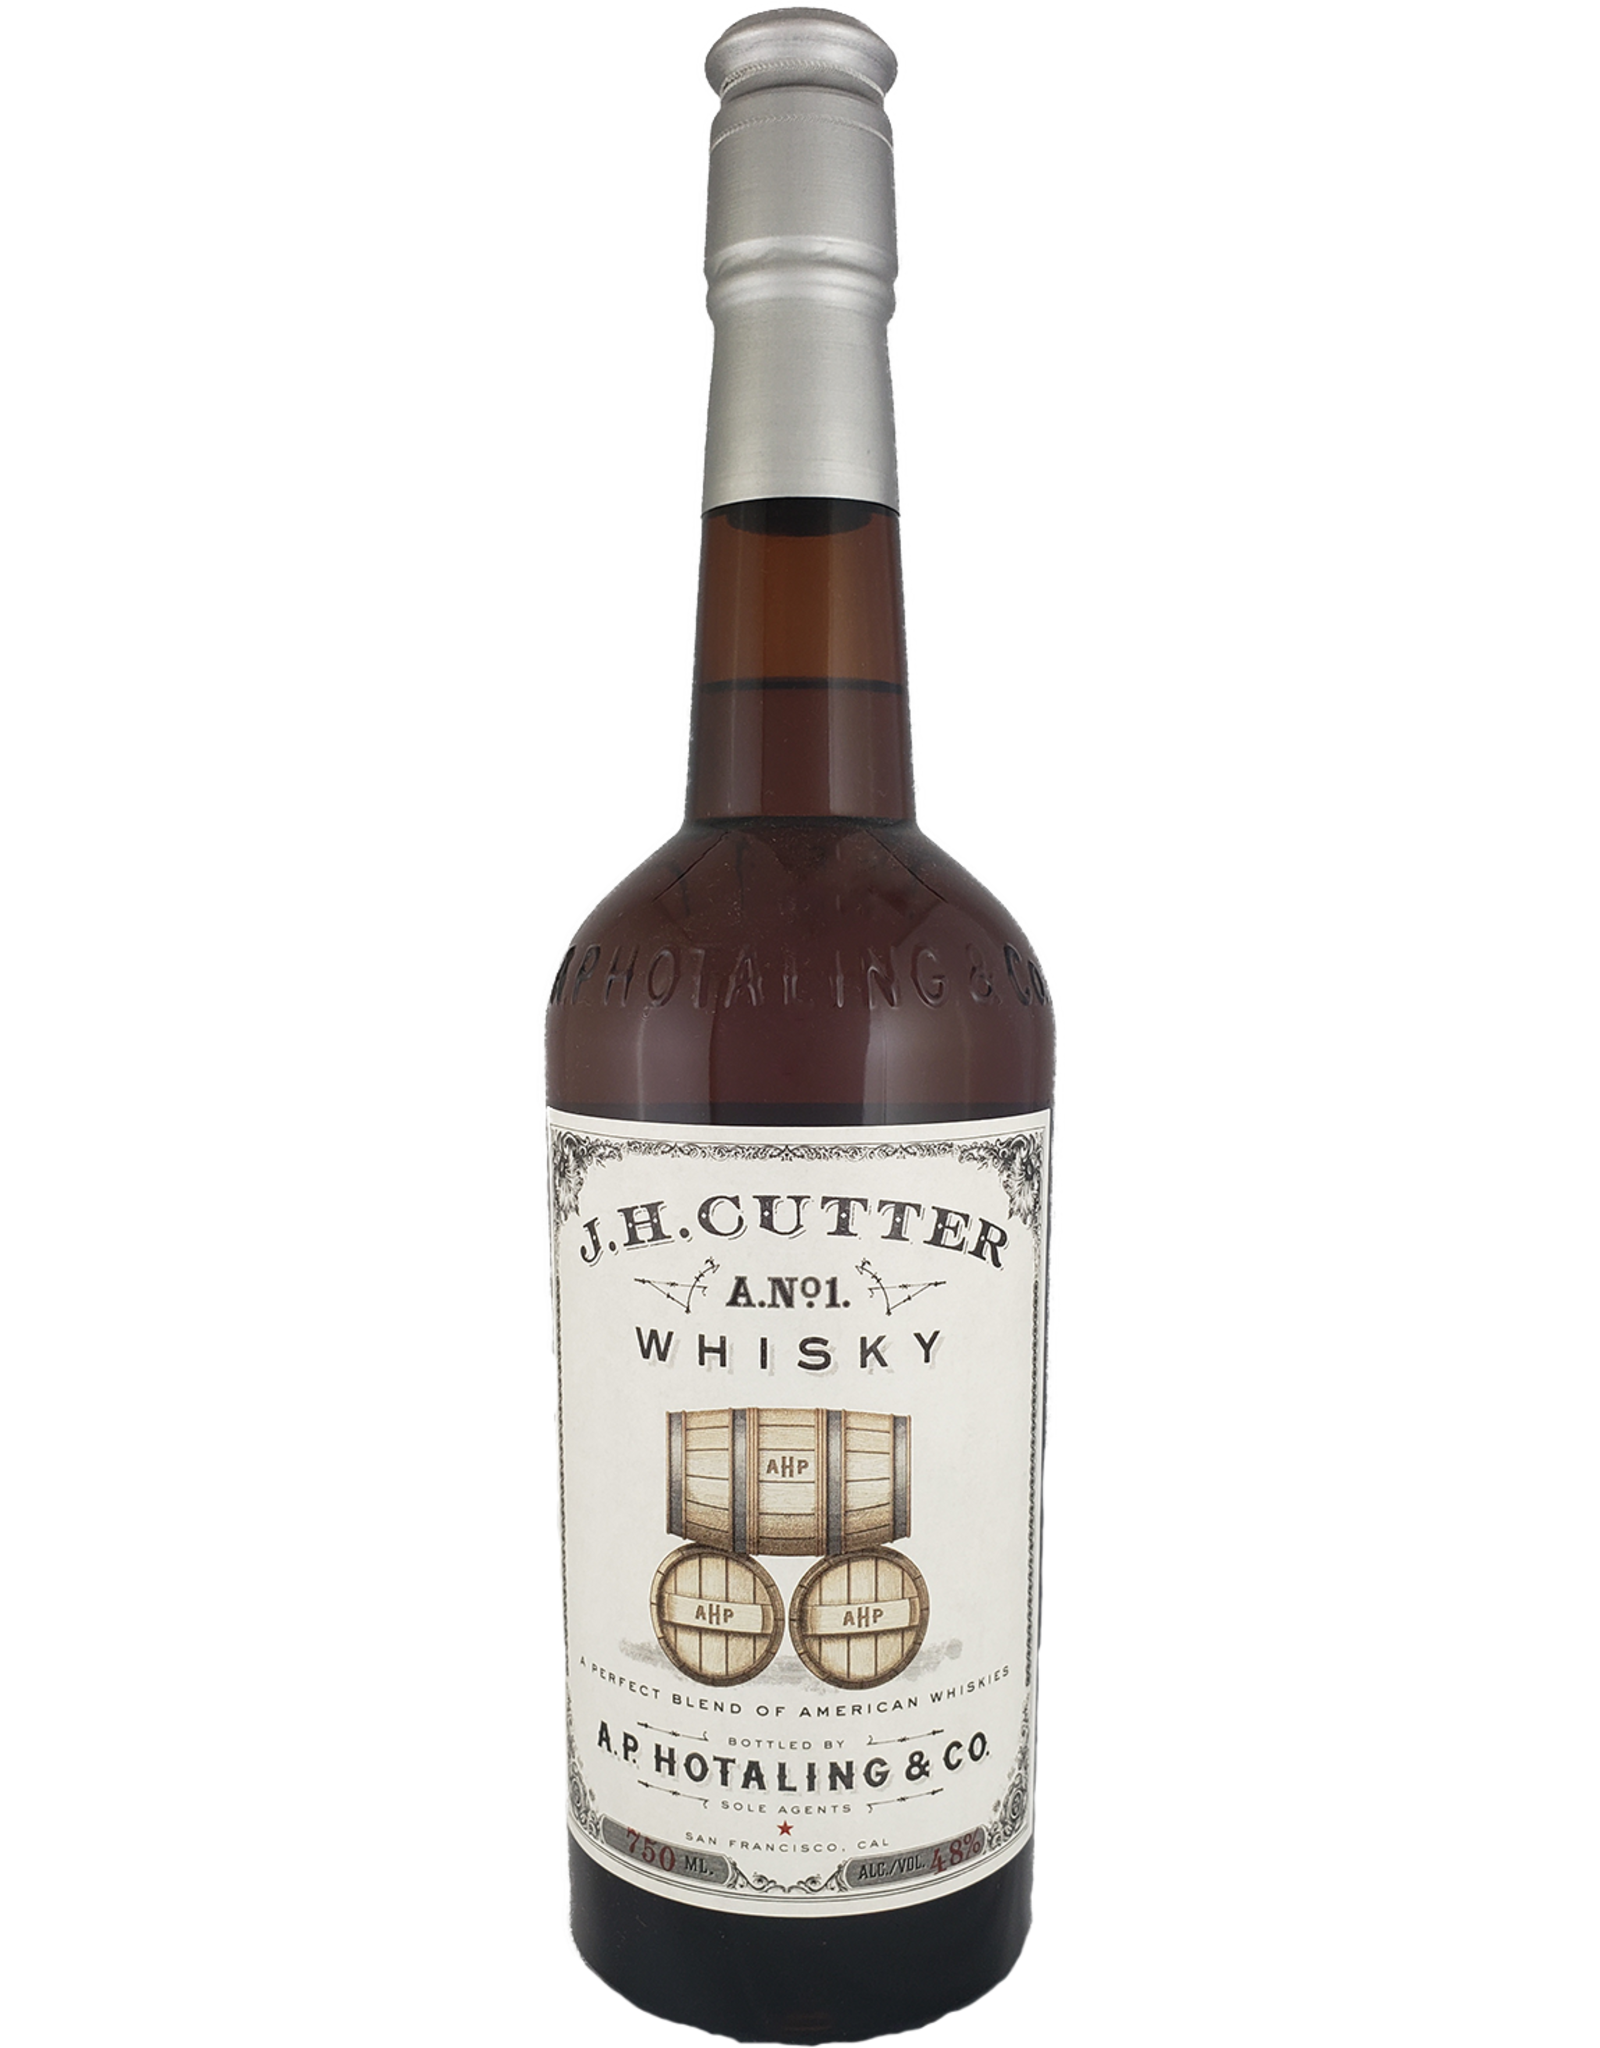 J.H. Cutter A. No. 1 American Blended Whisky, San Francisco